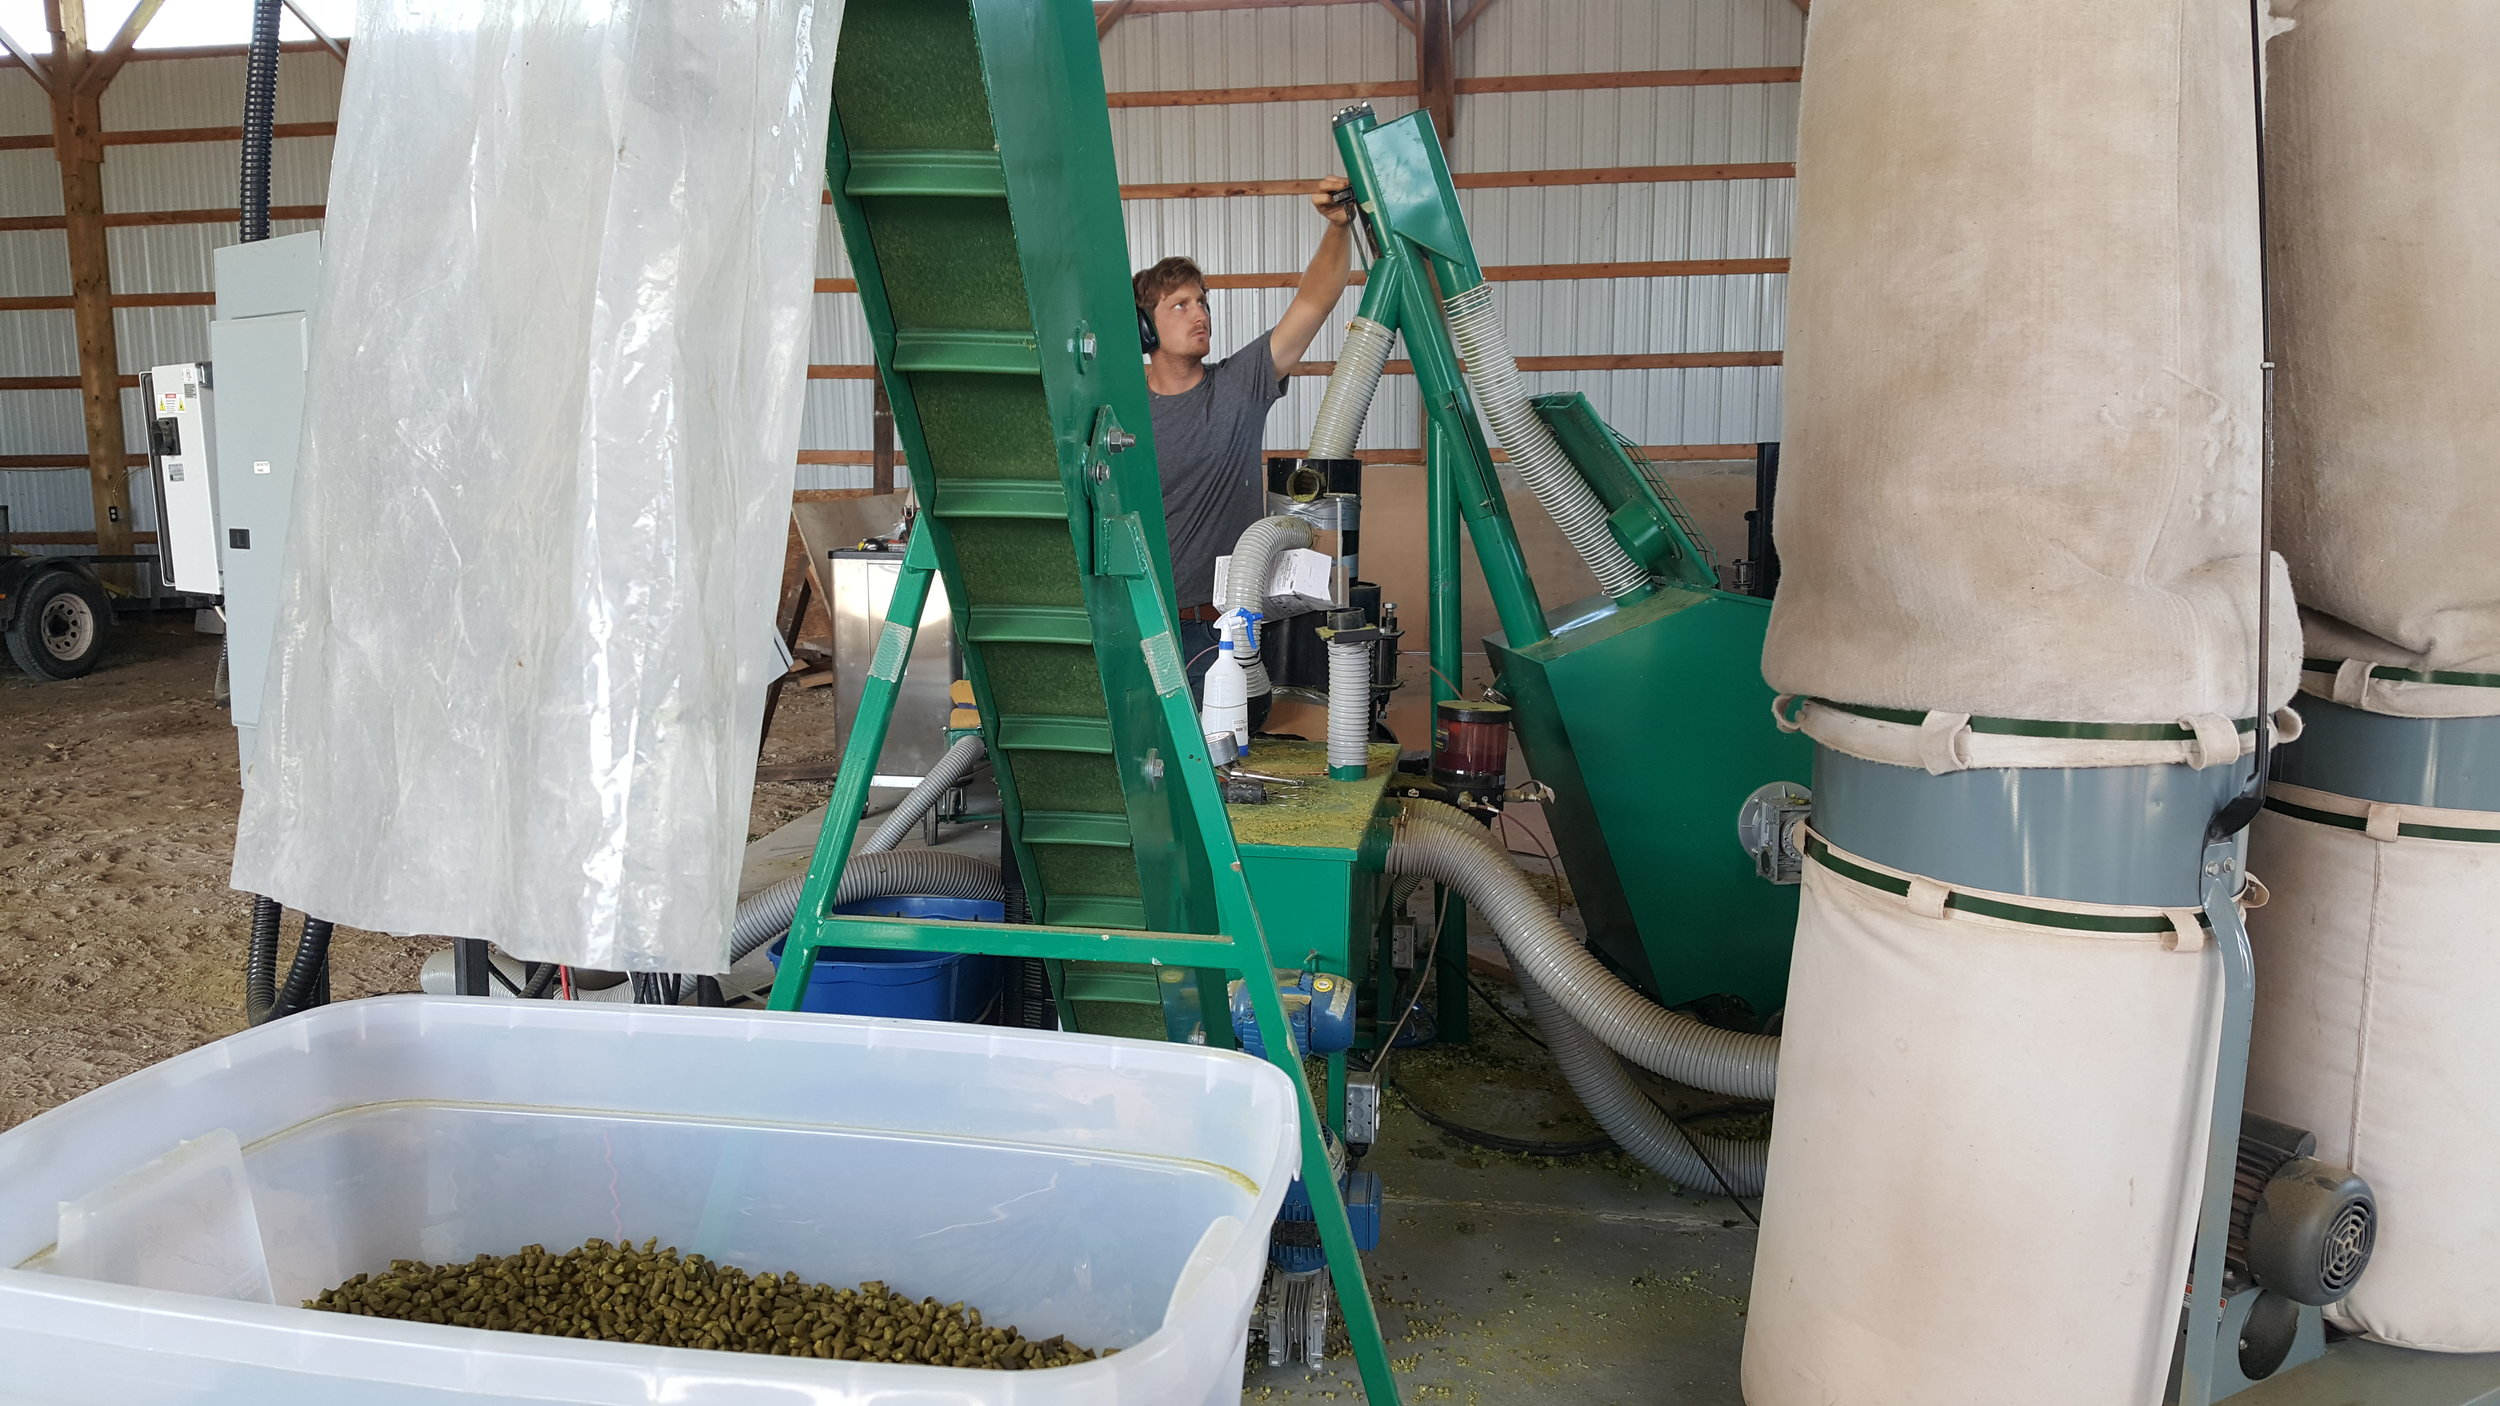 Scott pelletizing hops (2017)